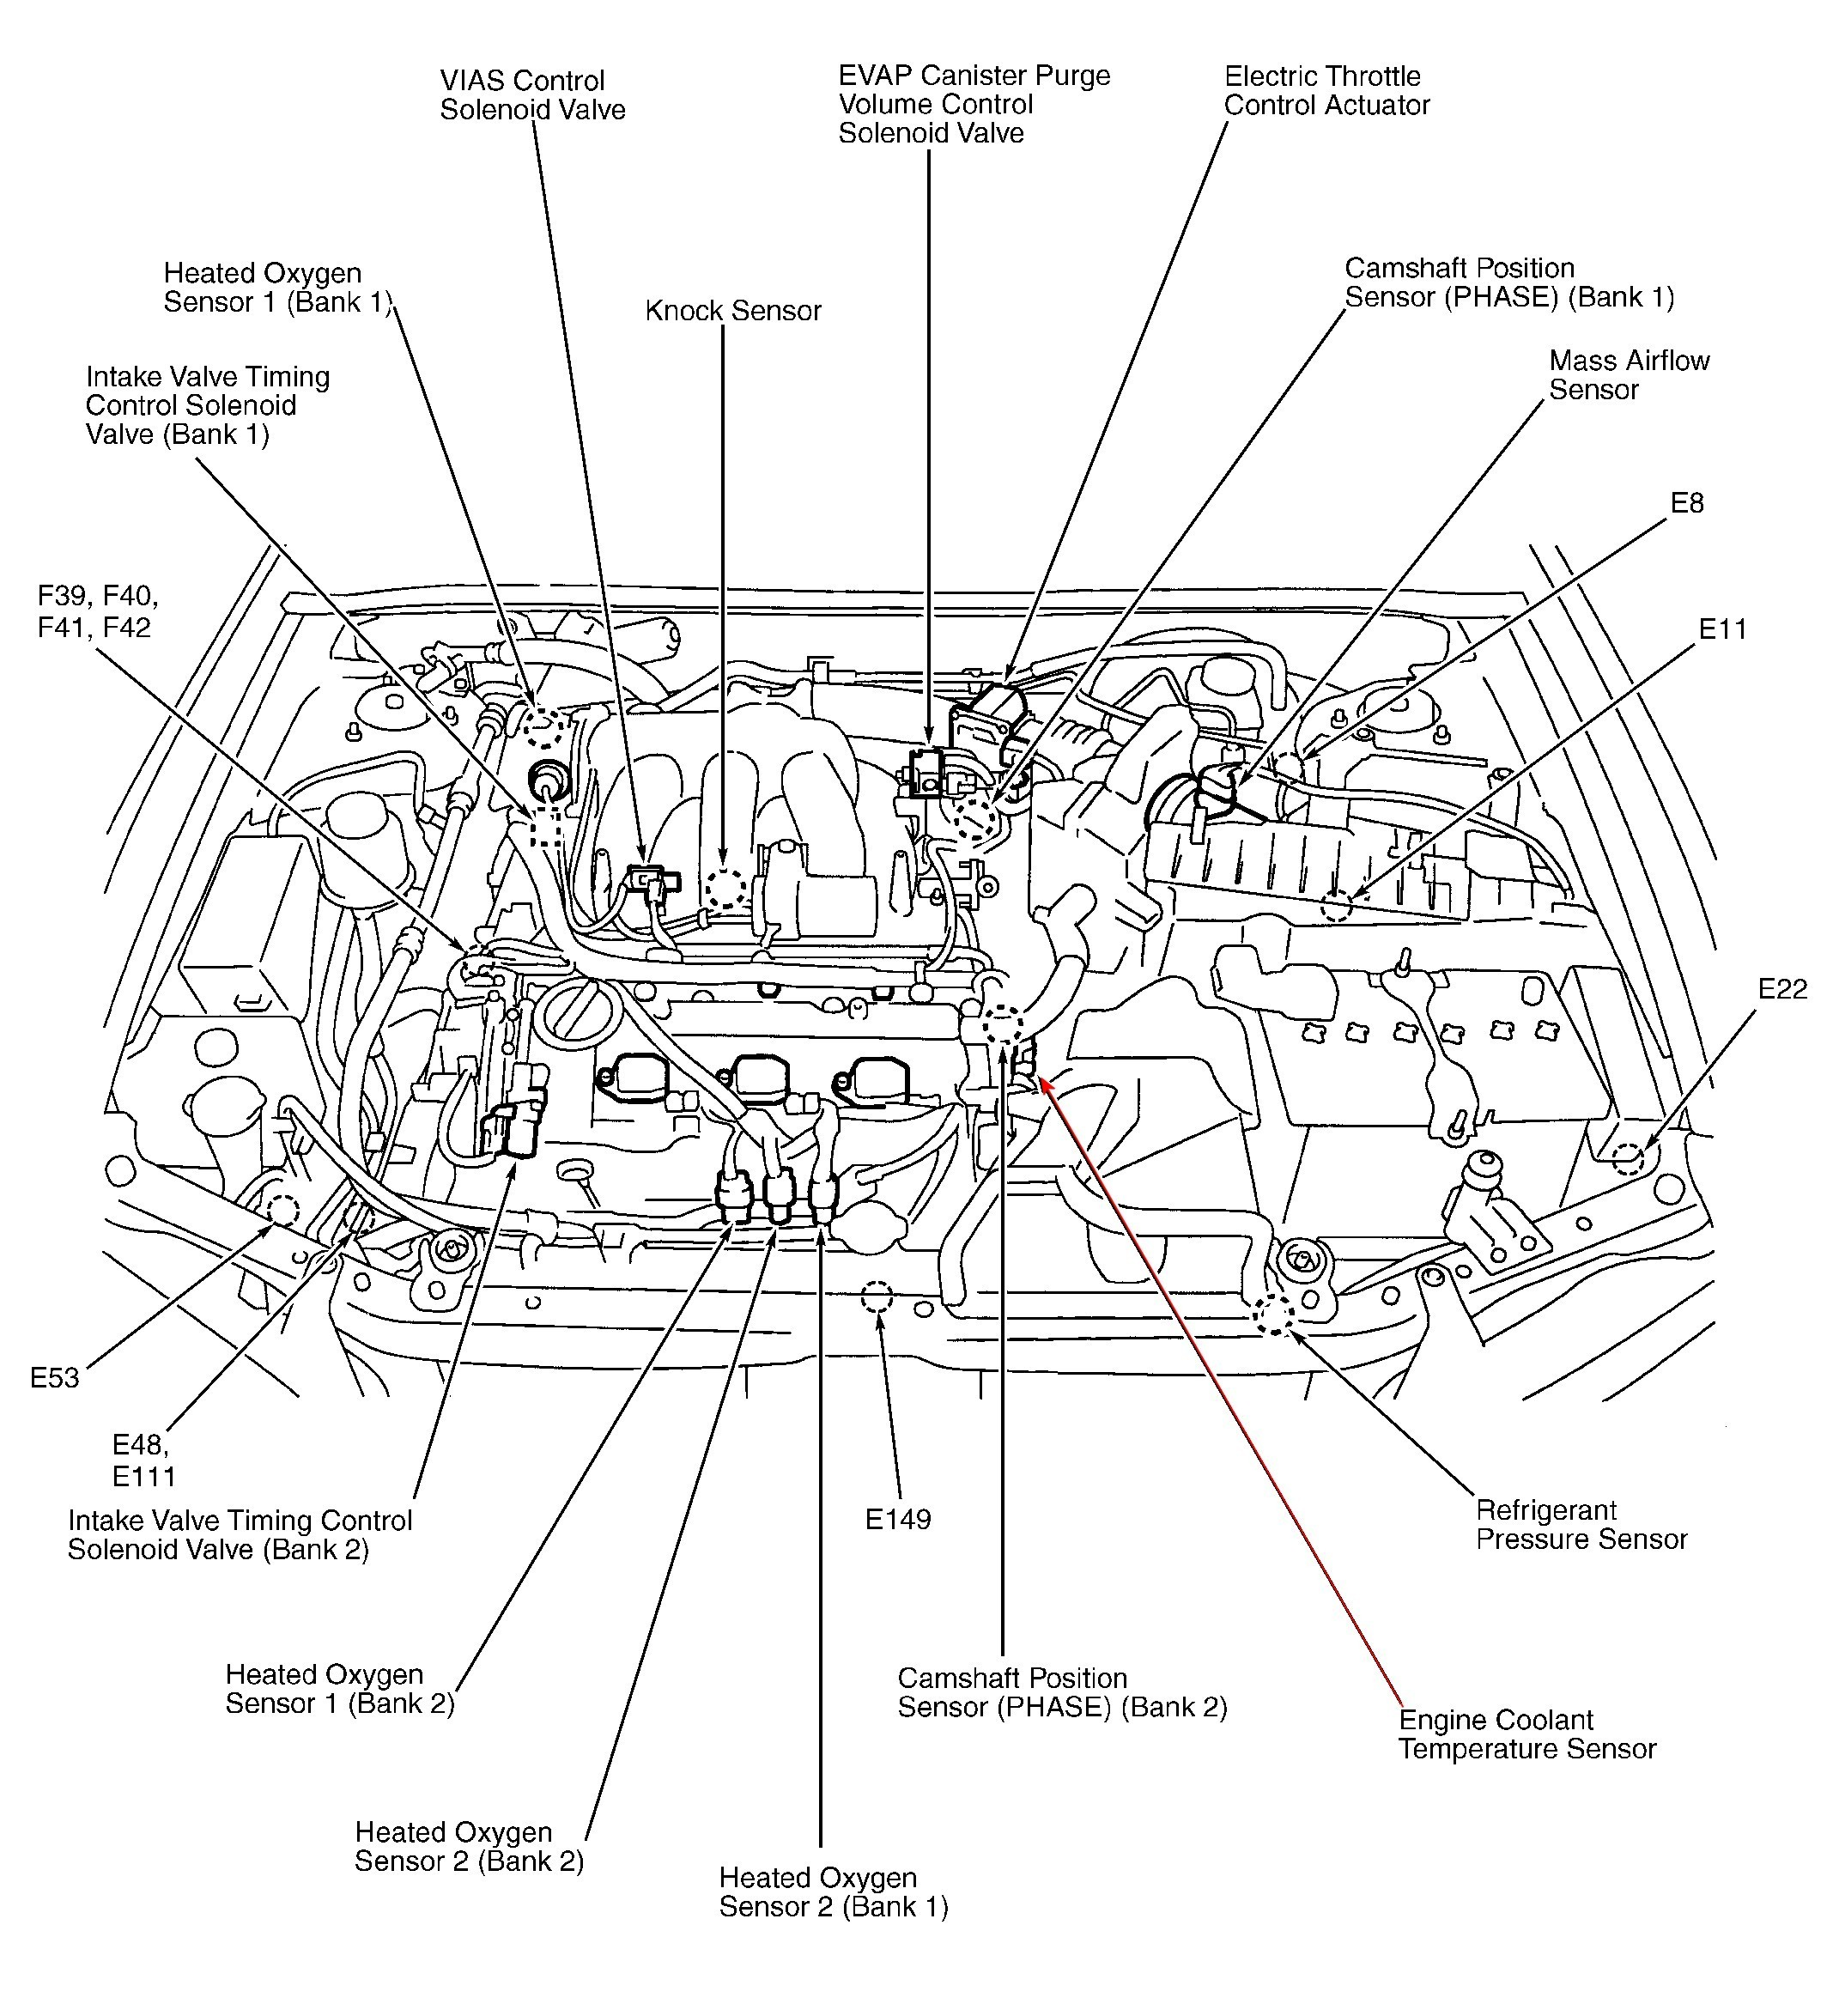 Jeep Cherokee Parts Diagram Seats Smart Wiring Diagrams \u2022 Chevy Tahoe  Body Parts Diagram Jeep Cherokee Body Parts Diagram